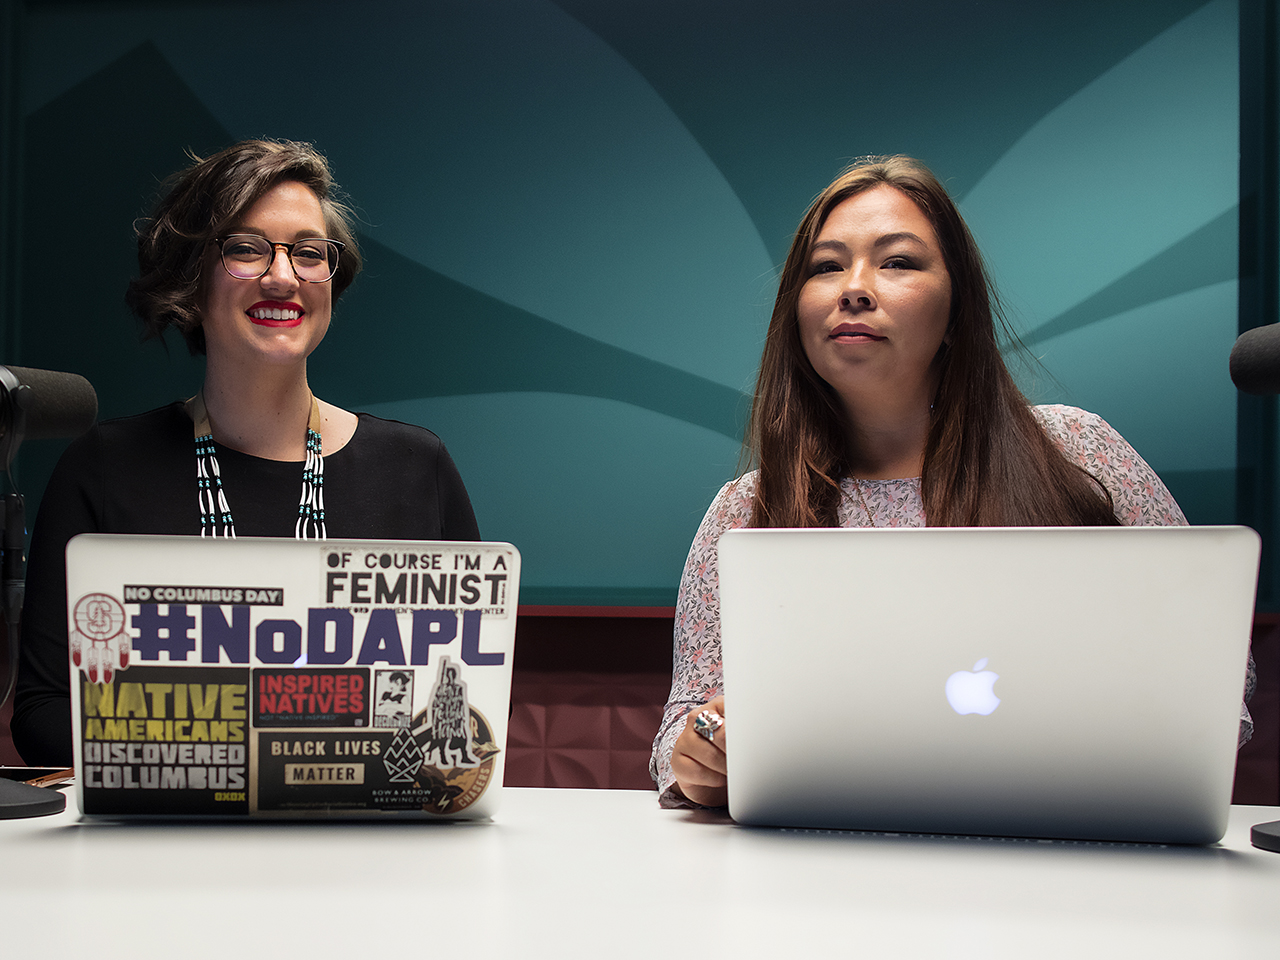 Indigenous podcasts: All My Relations hosts Adrienne Keene with laptop with stickers and Marika Wilbur with Mac laptop